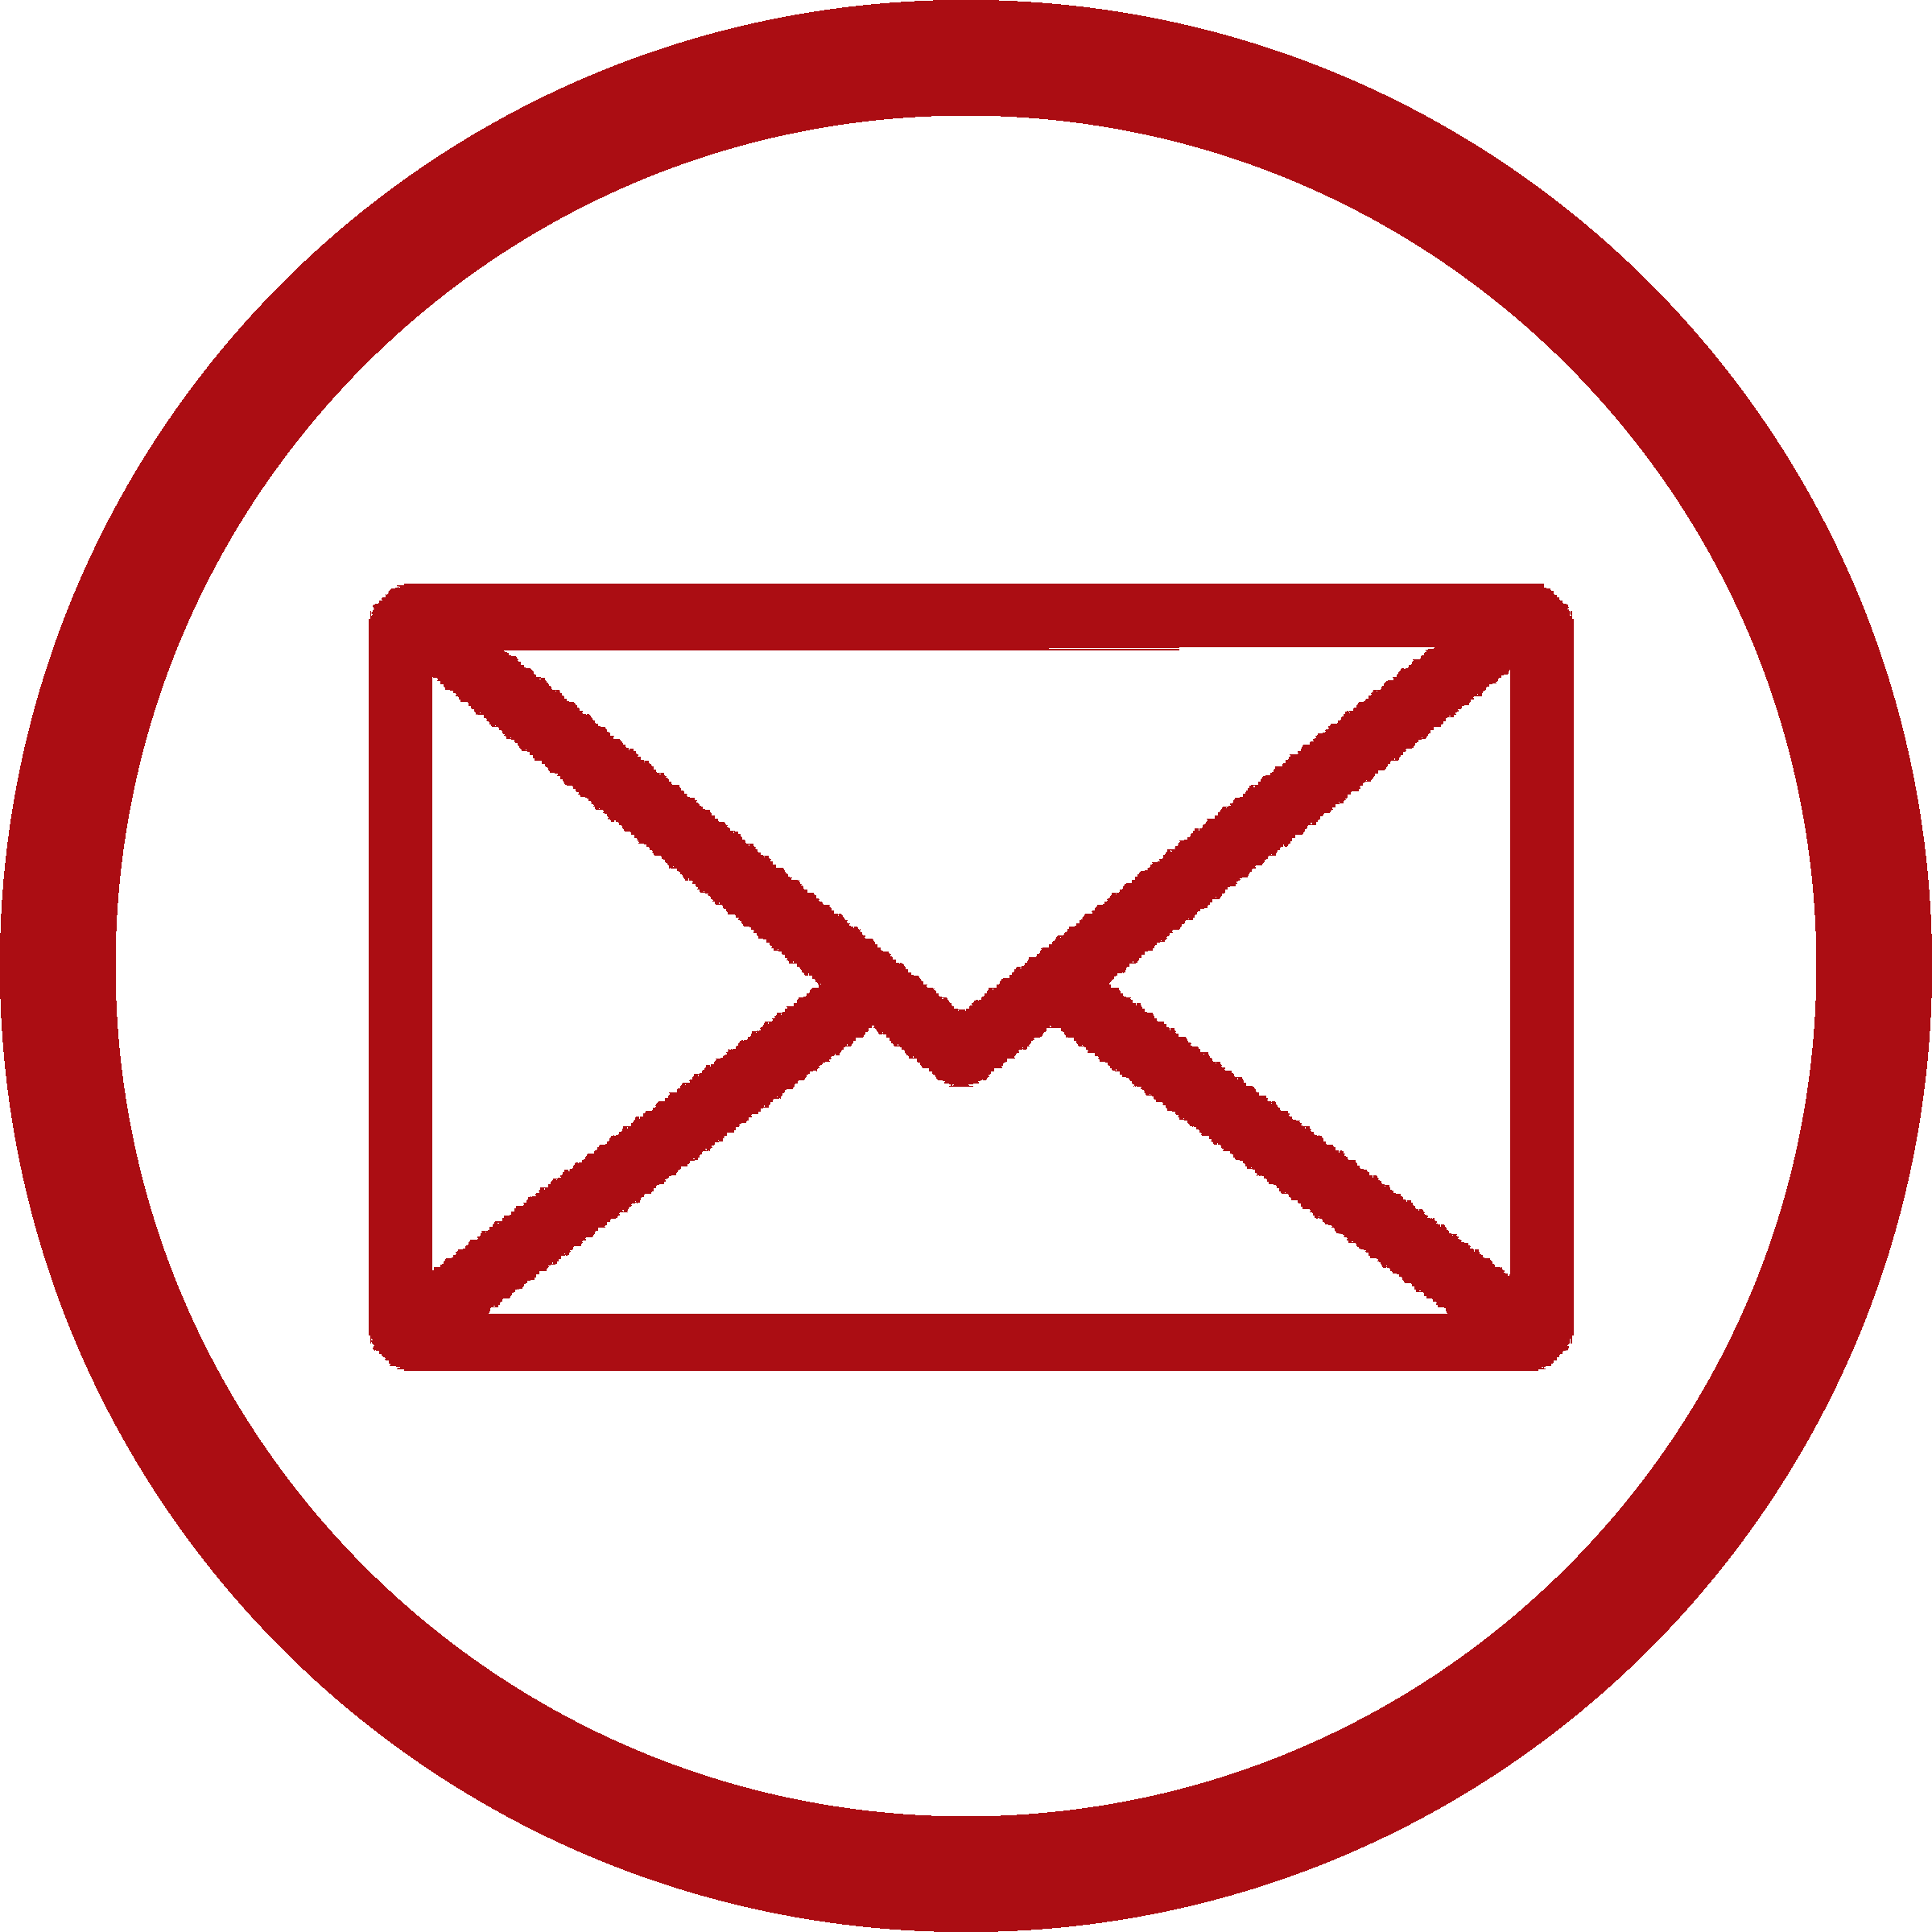 Red Email Icon Png #103106.